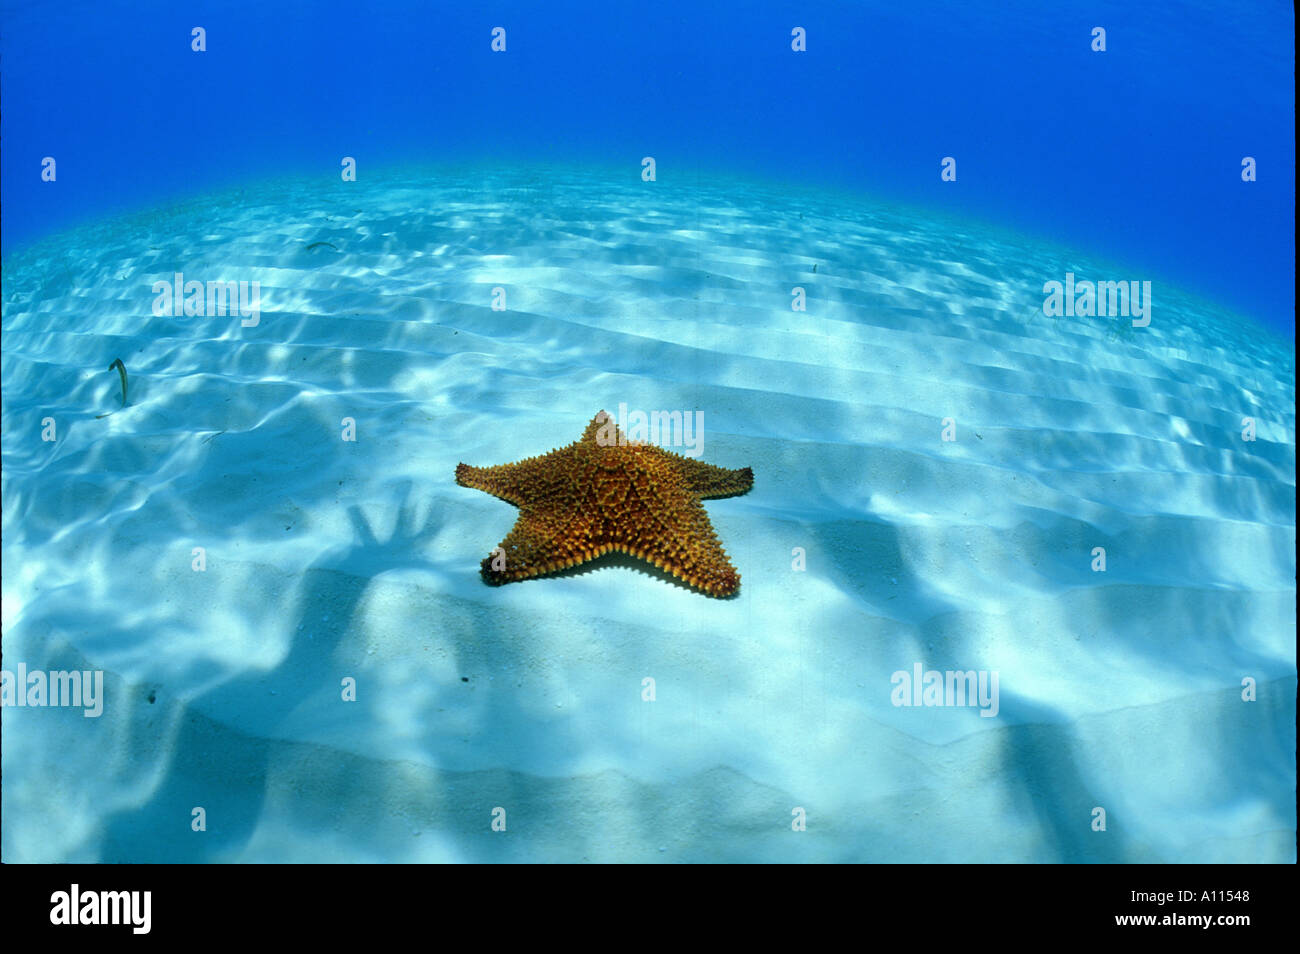 A CUSHION SEA STAR OR STARFISH IN SHALLOW OCEAN WATERS IN ...